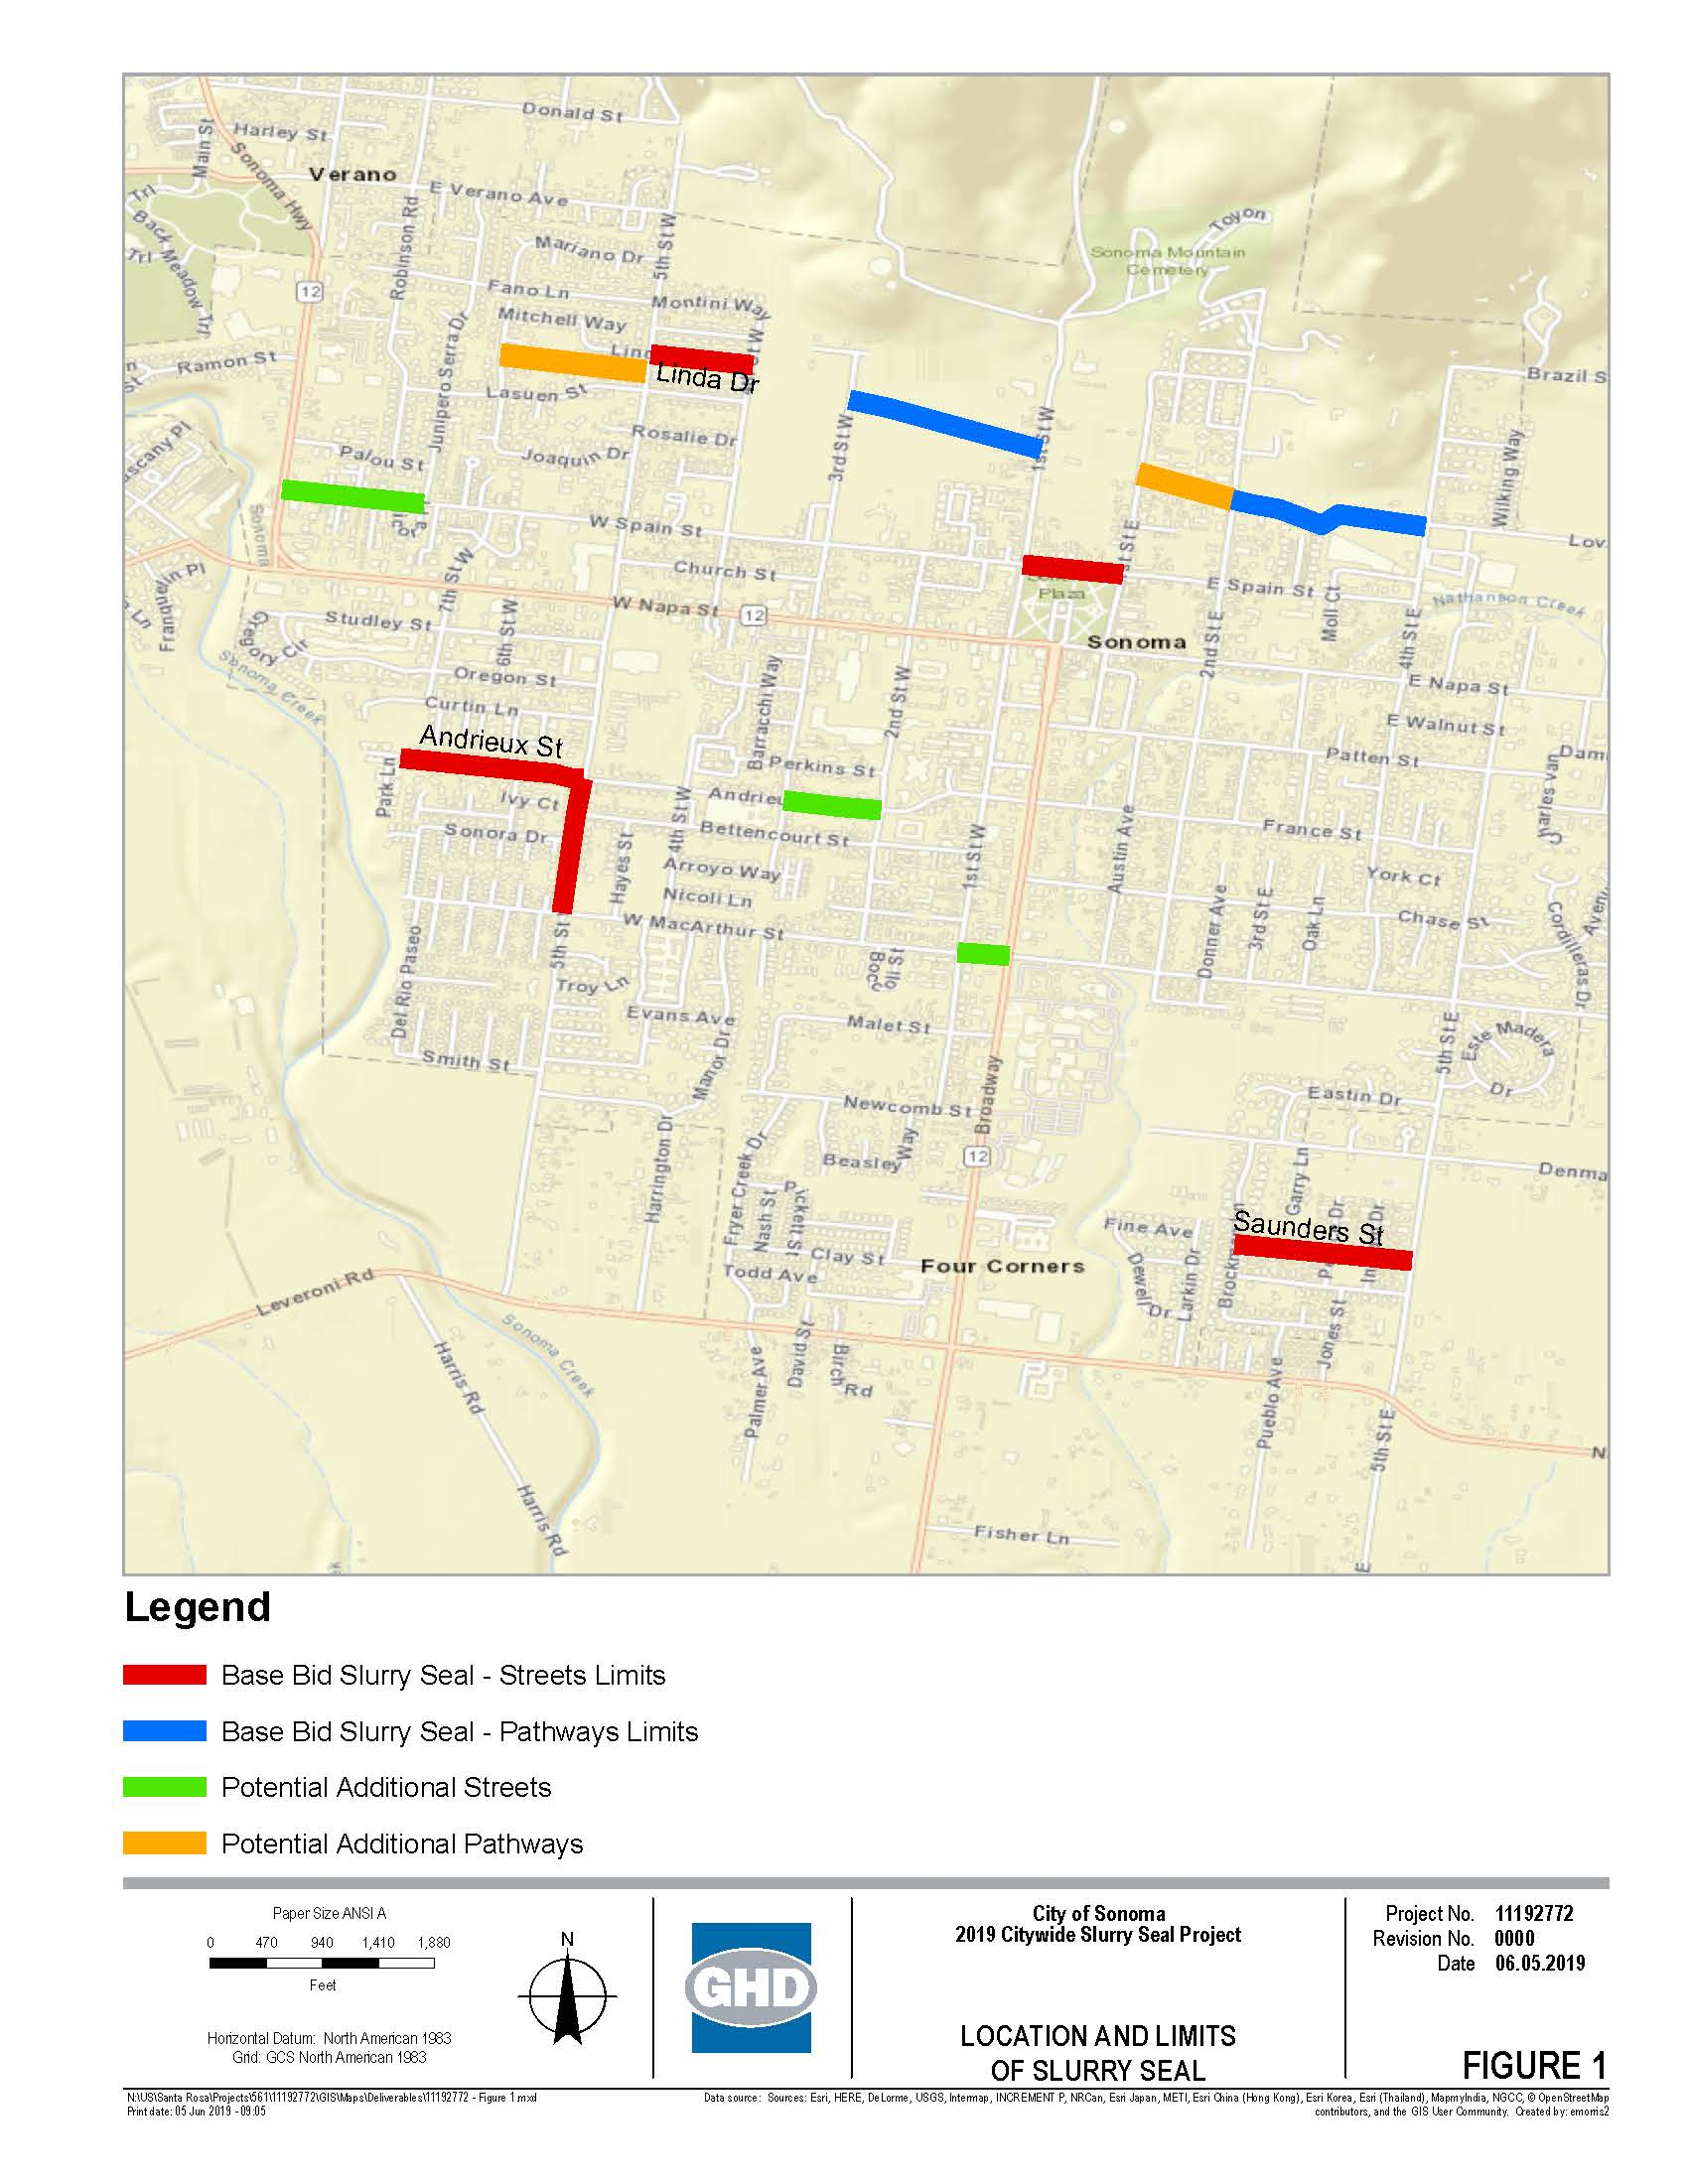 Map of Proposed Project Limits for 2019 Citywide Slurry Seal Project